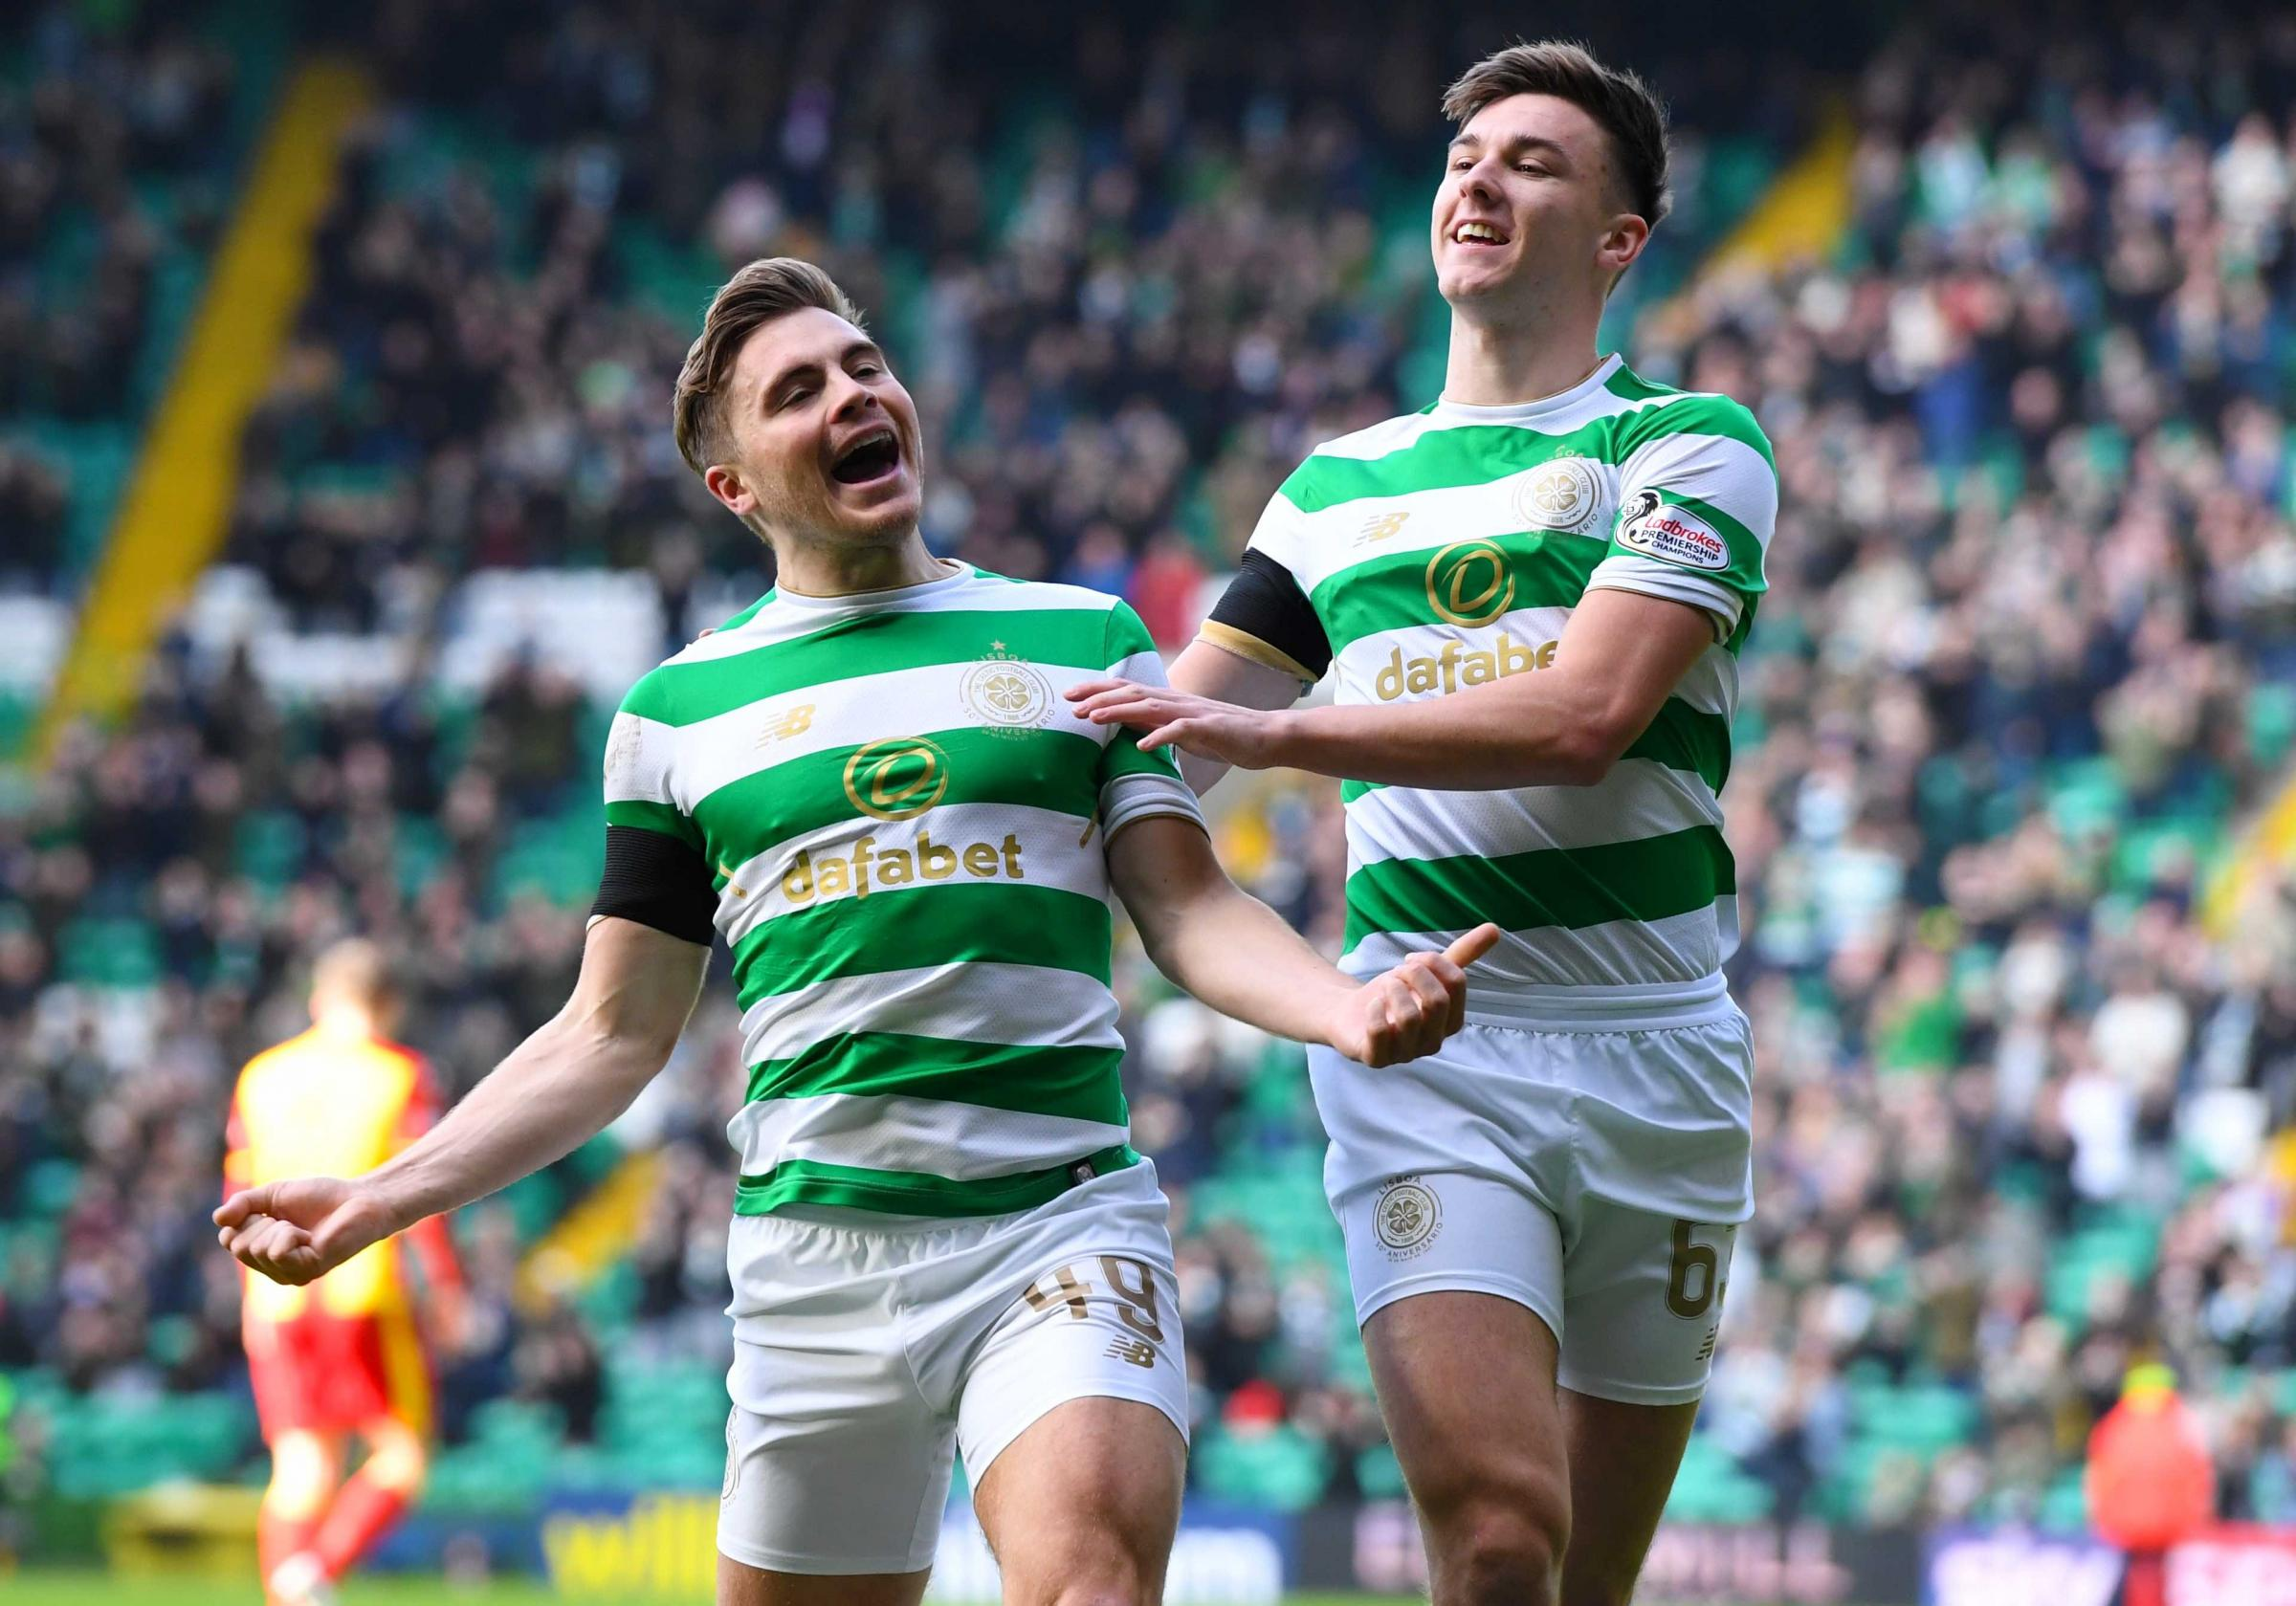 James Forrest has urged Celtic to take nothing for granted ahead of Sunday's game against Rangers